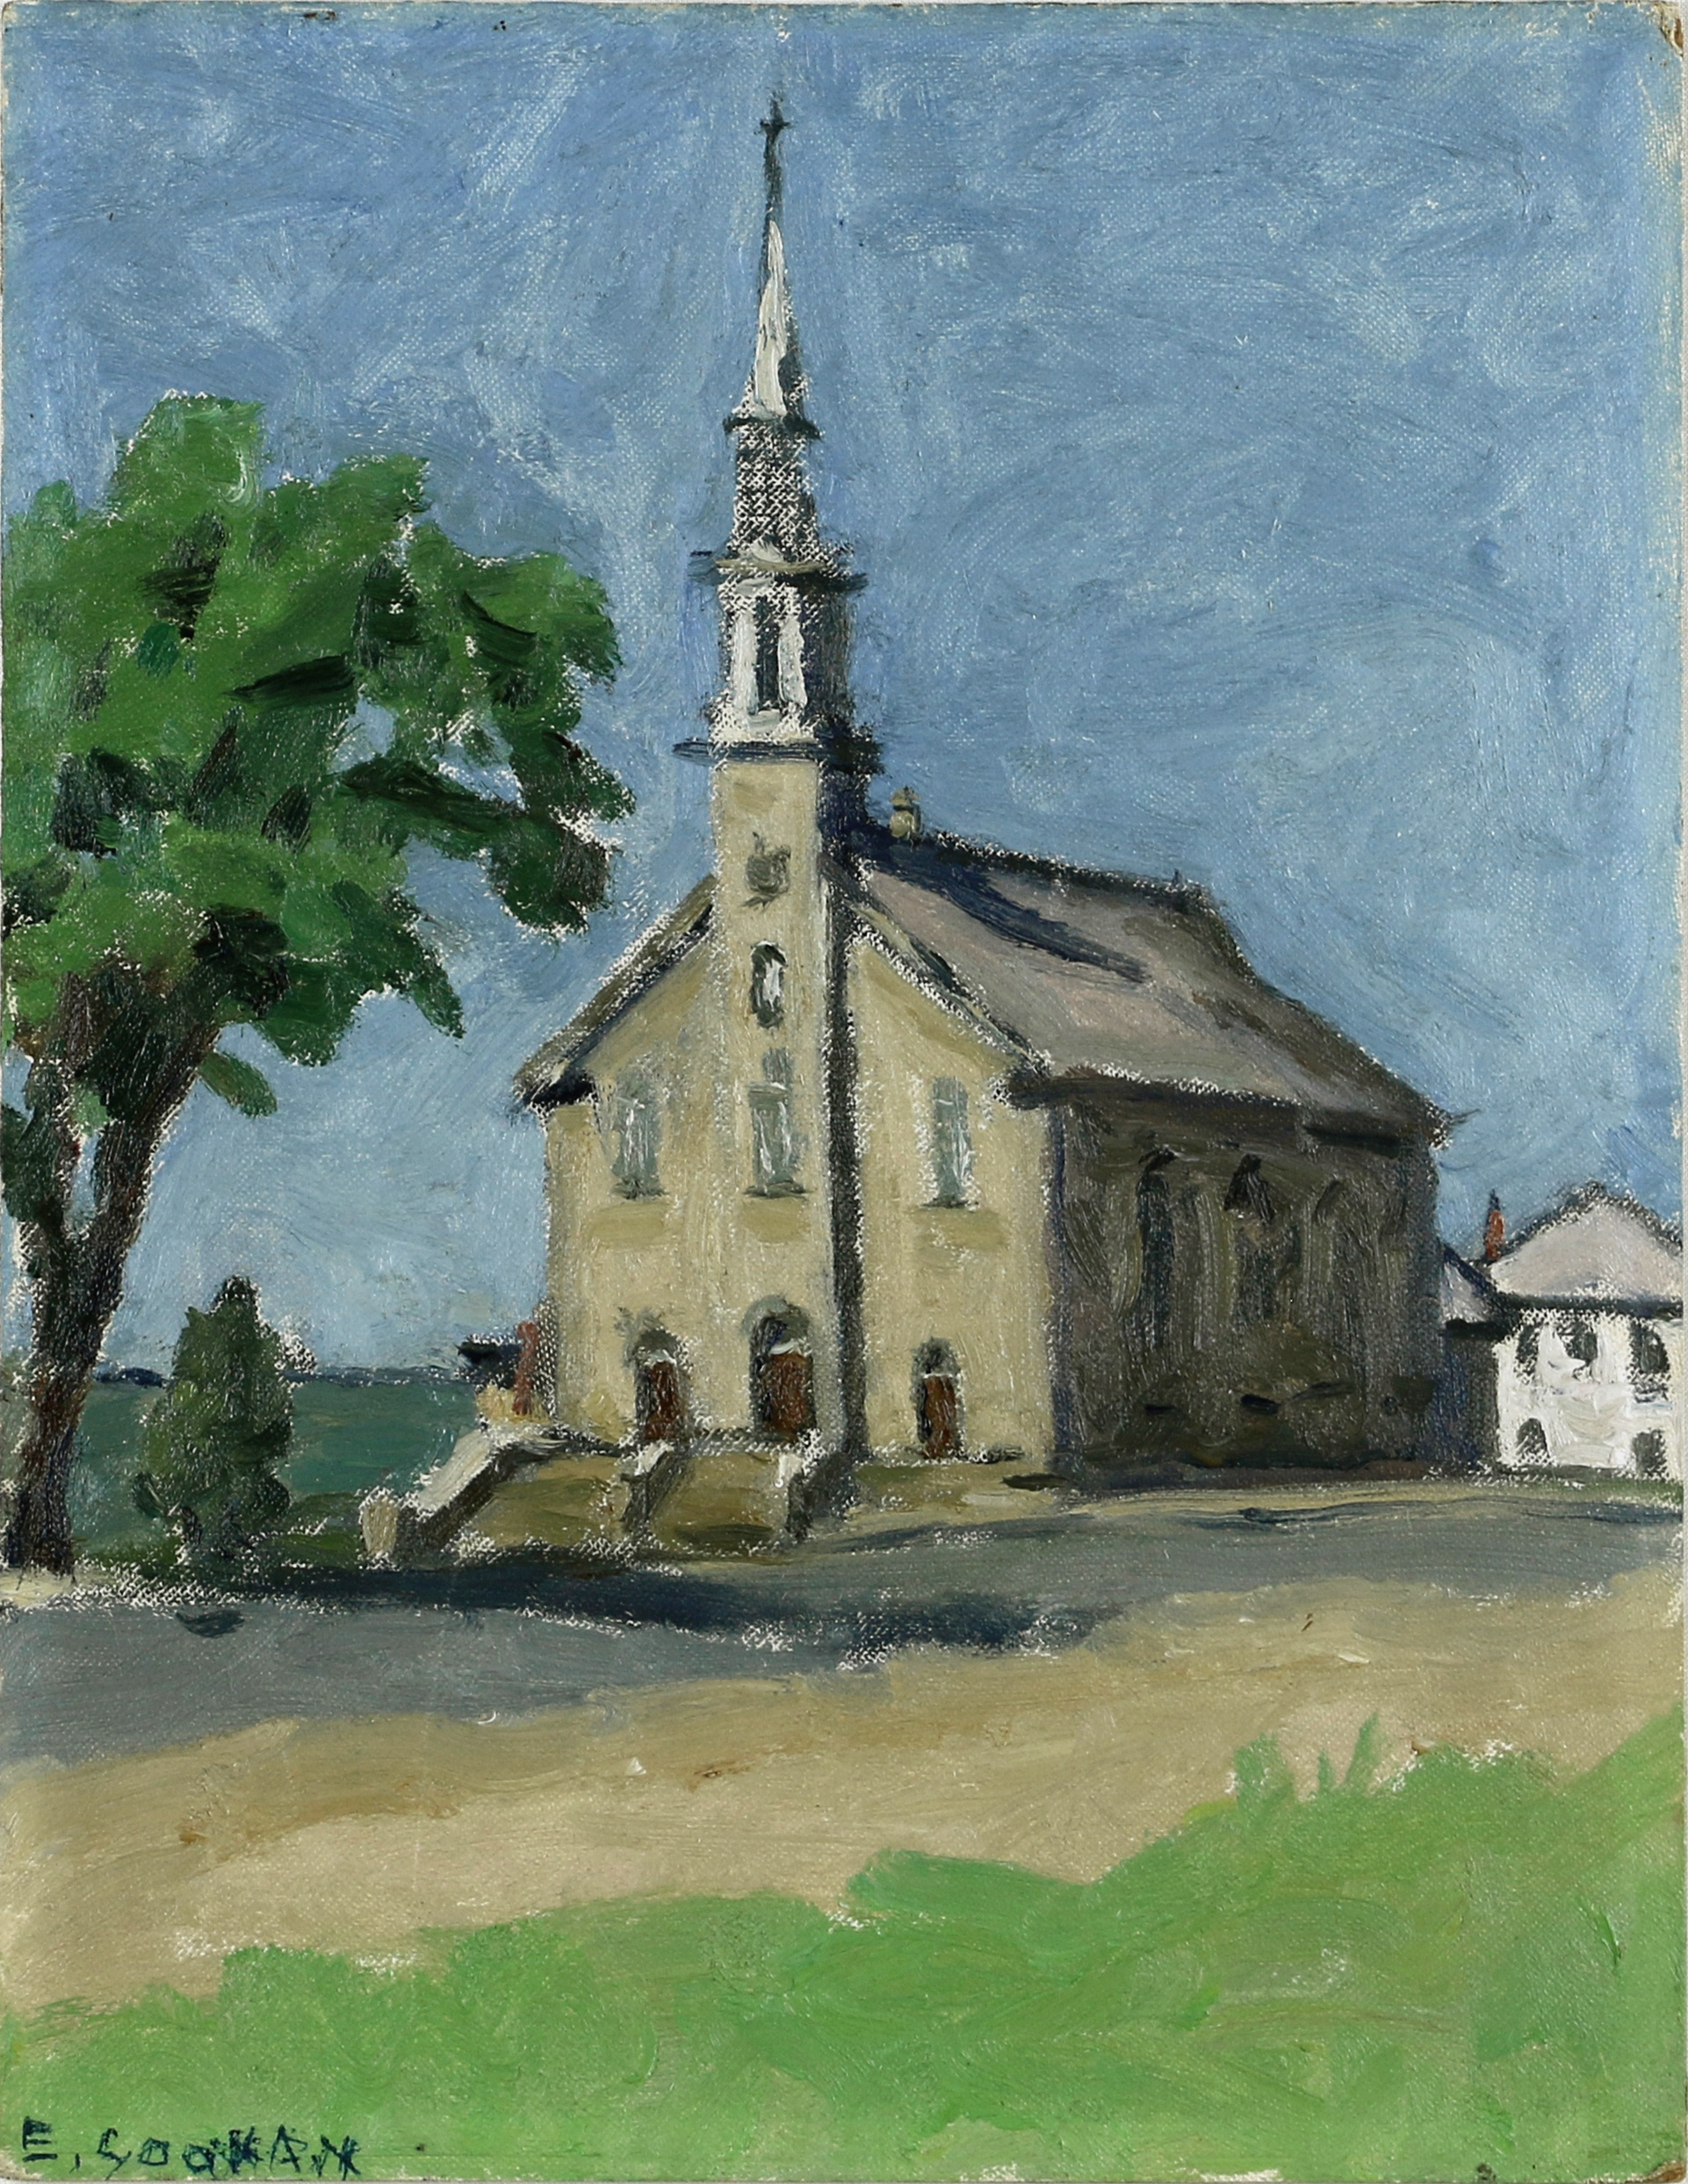 Emiy Coonan, Church at Notre-Dame-du-Portage (Near Cacouna) Oil on canvas board, 14 x 11 in (35.6 x 27.9 cm)